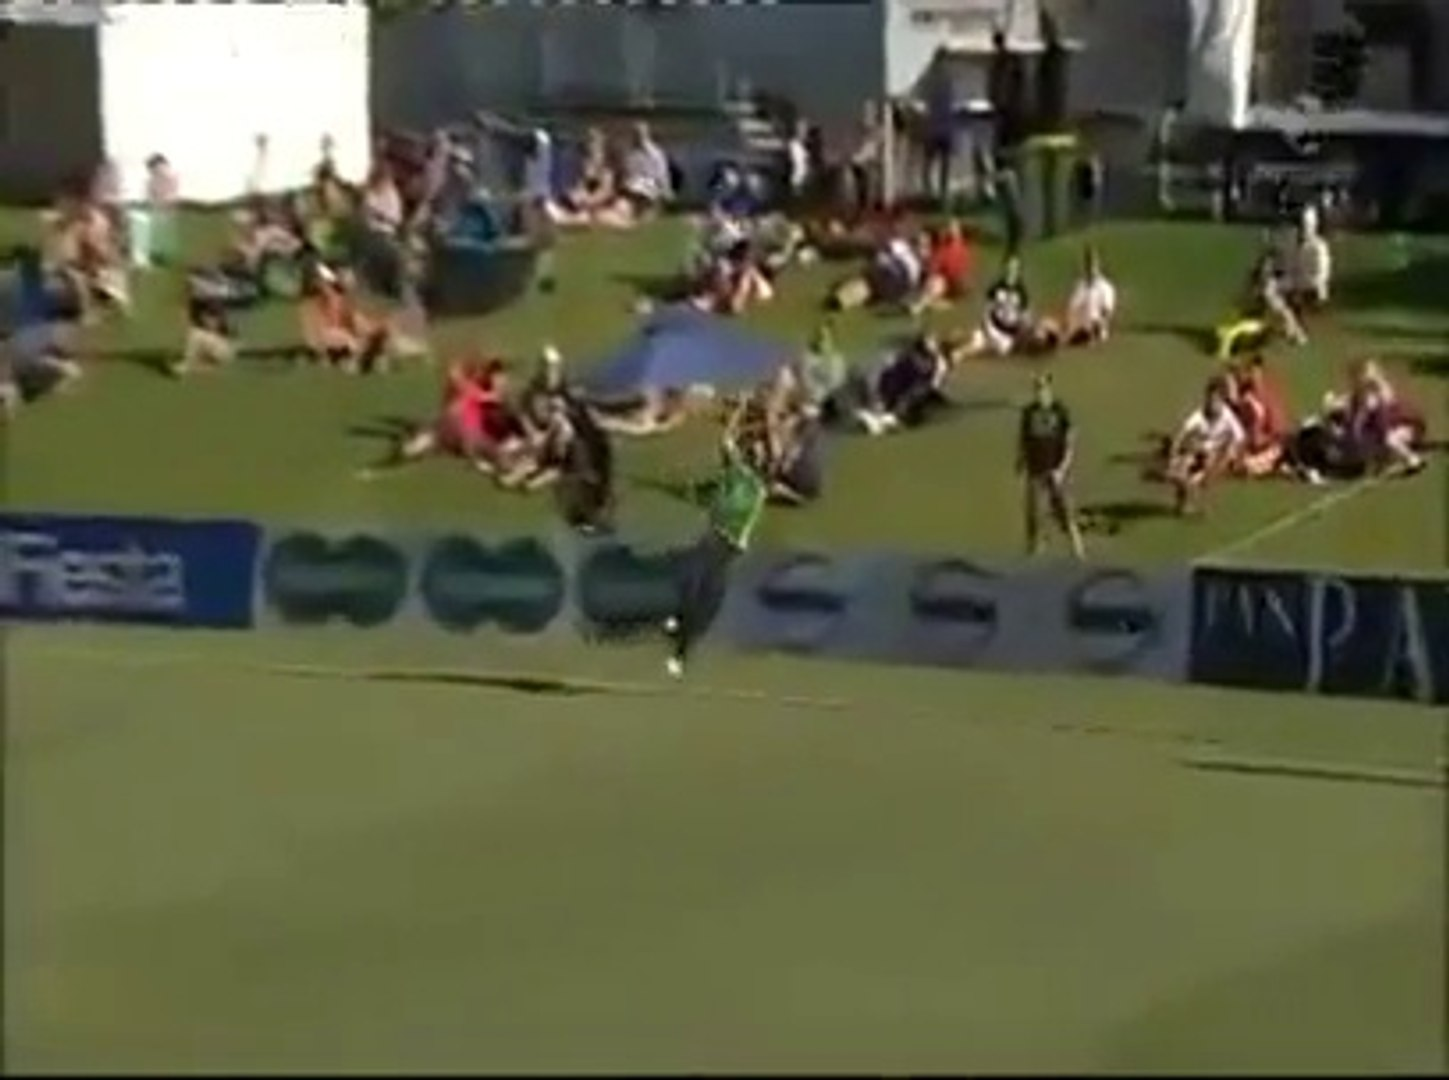 Amazing Catch Of The Year 2012, Its Really a Fabulous Catch